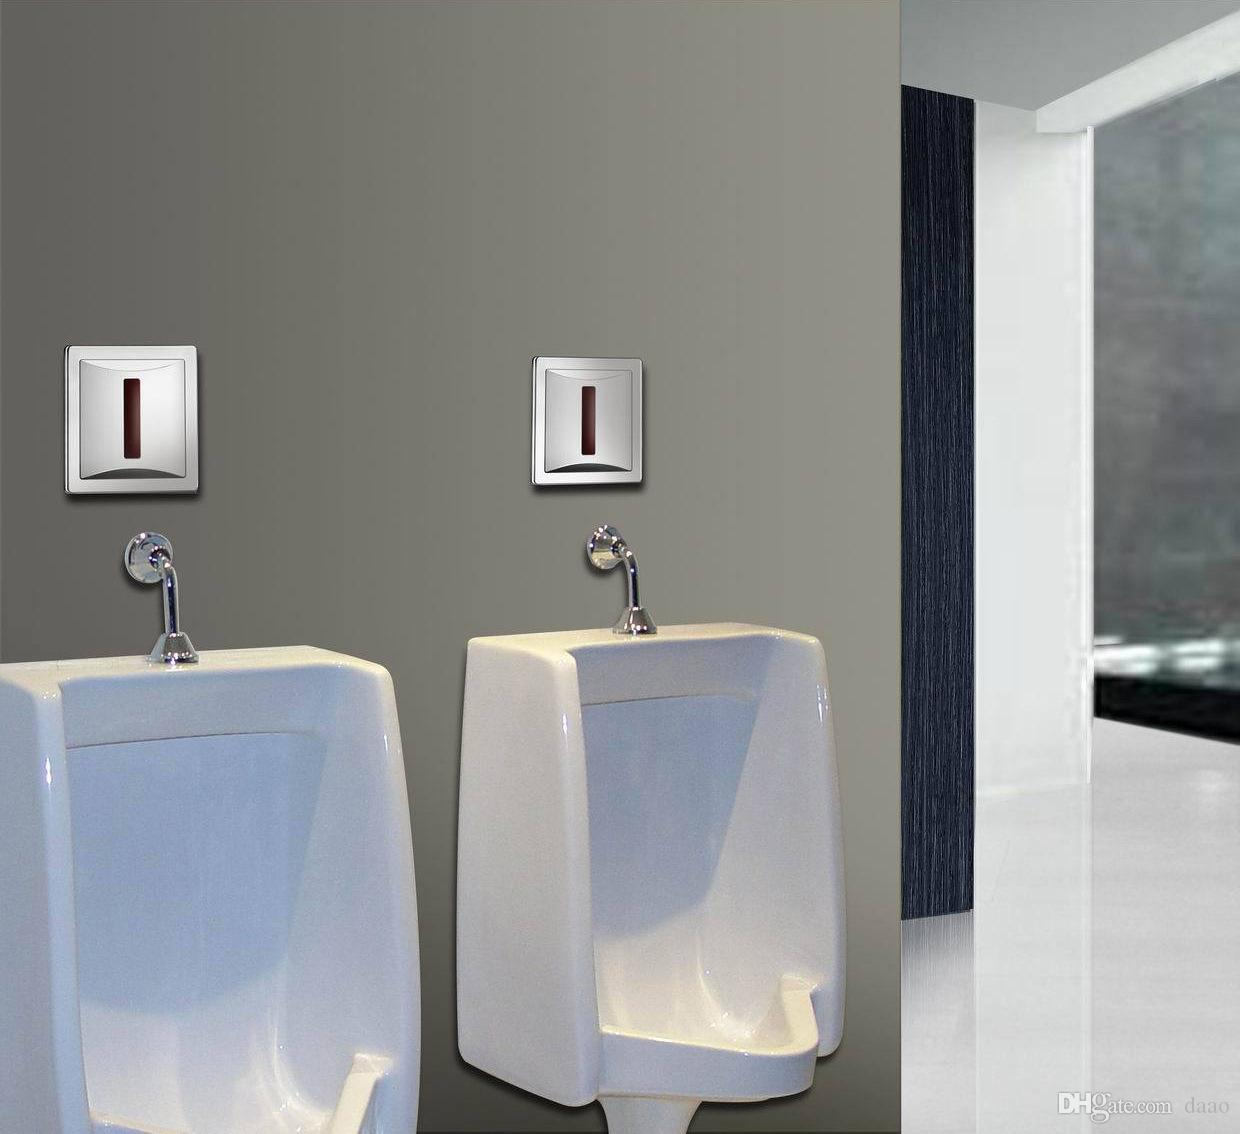 ABS concave and convex panel Automatic urination valve, school old age home station, toilet flushing valve